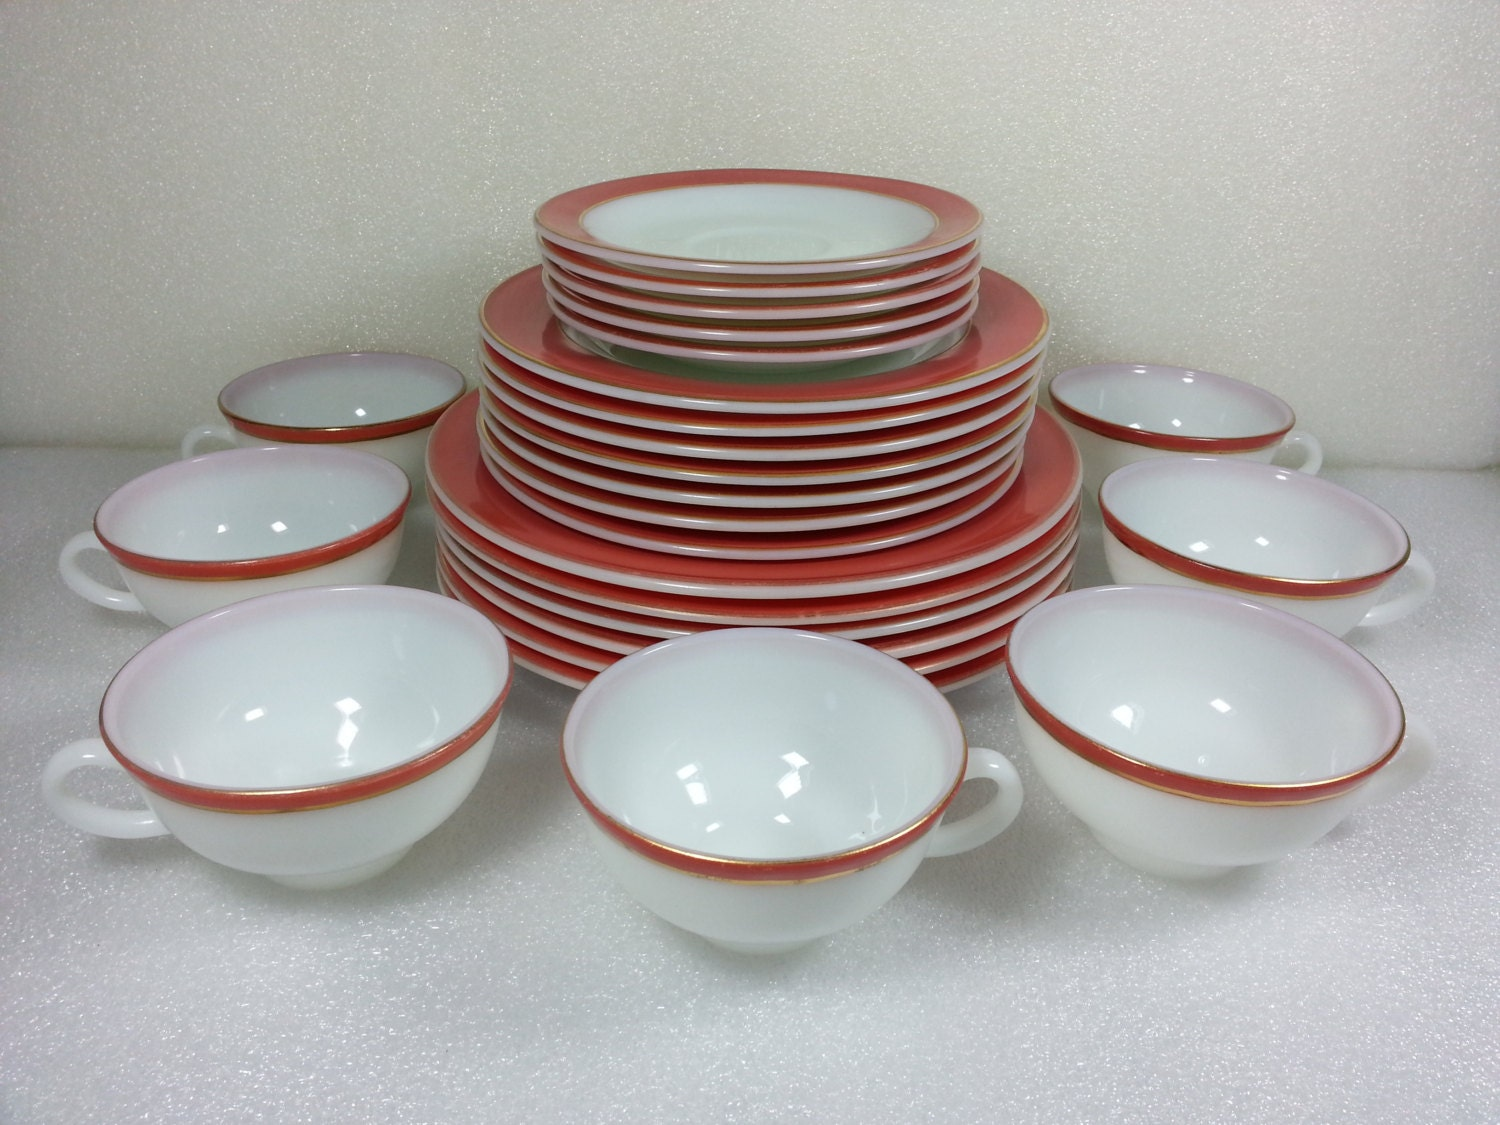 Vintage Pyrex Flamigo Pink Dinnerware Set - 25 Piece & Boyertown Pennsylvania Treasure Hunters